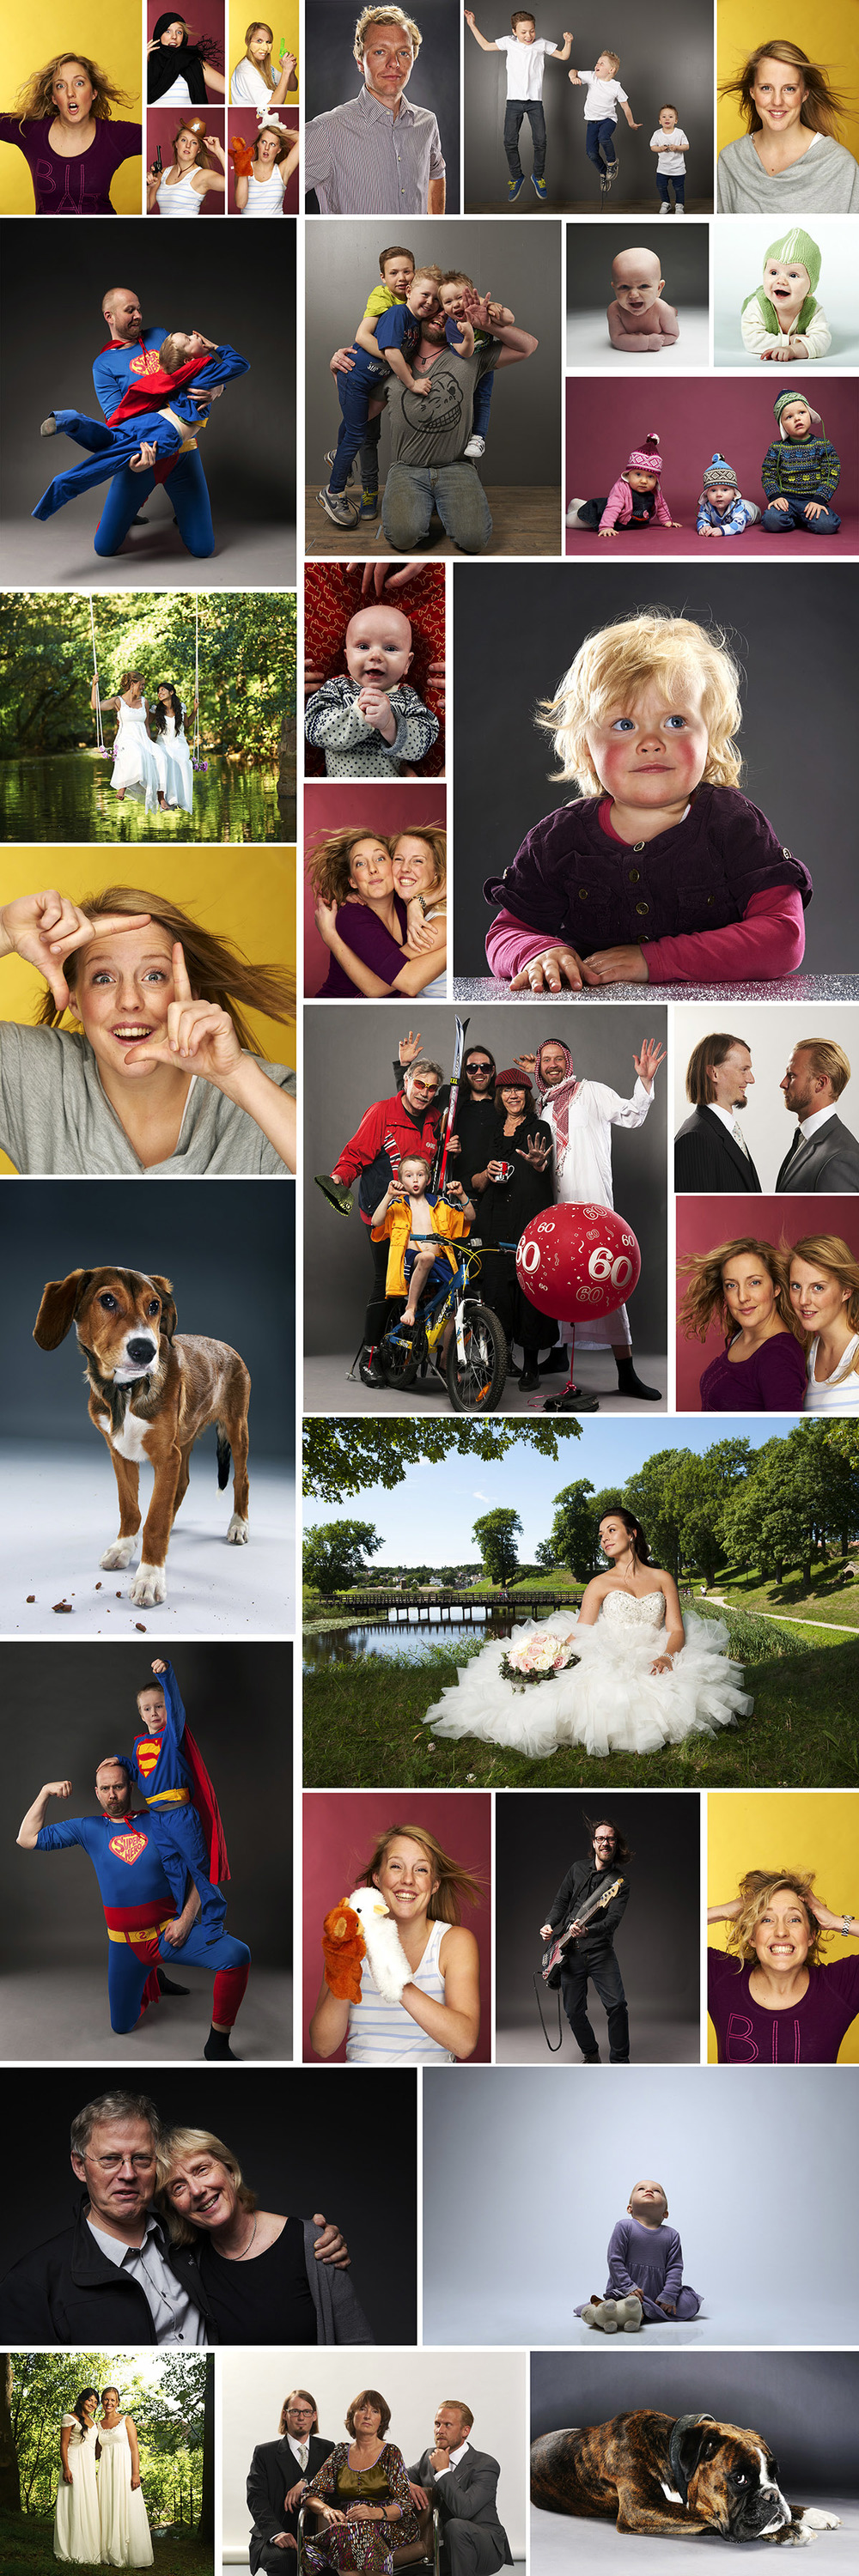 Havardschei_familyportraits_collage_2013.jpg